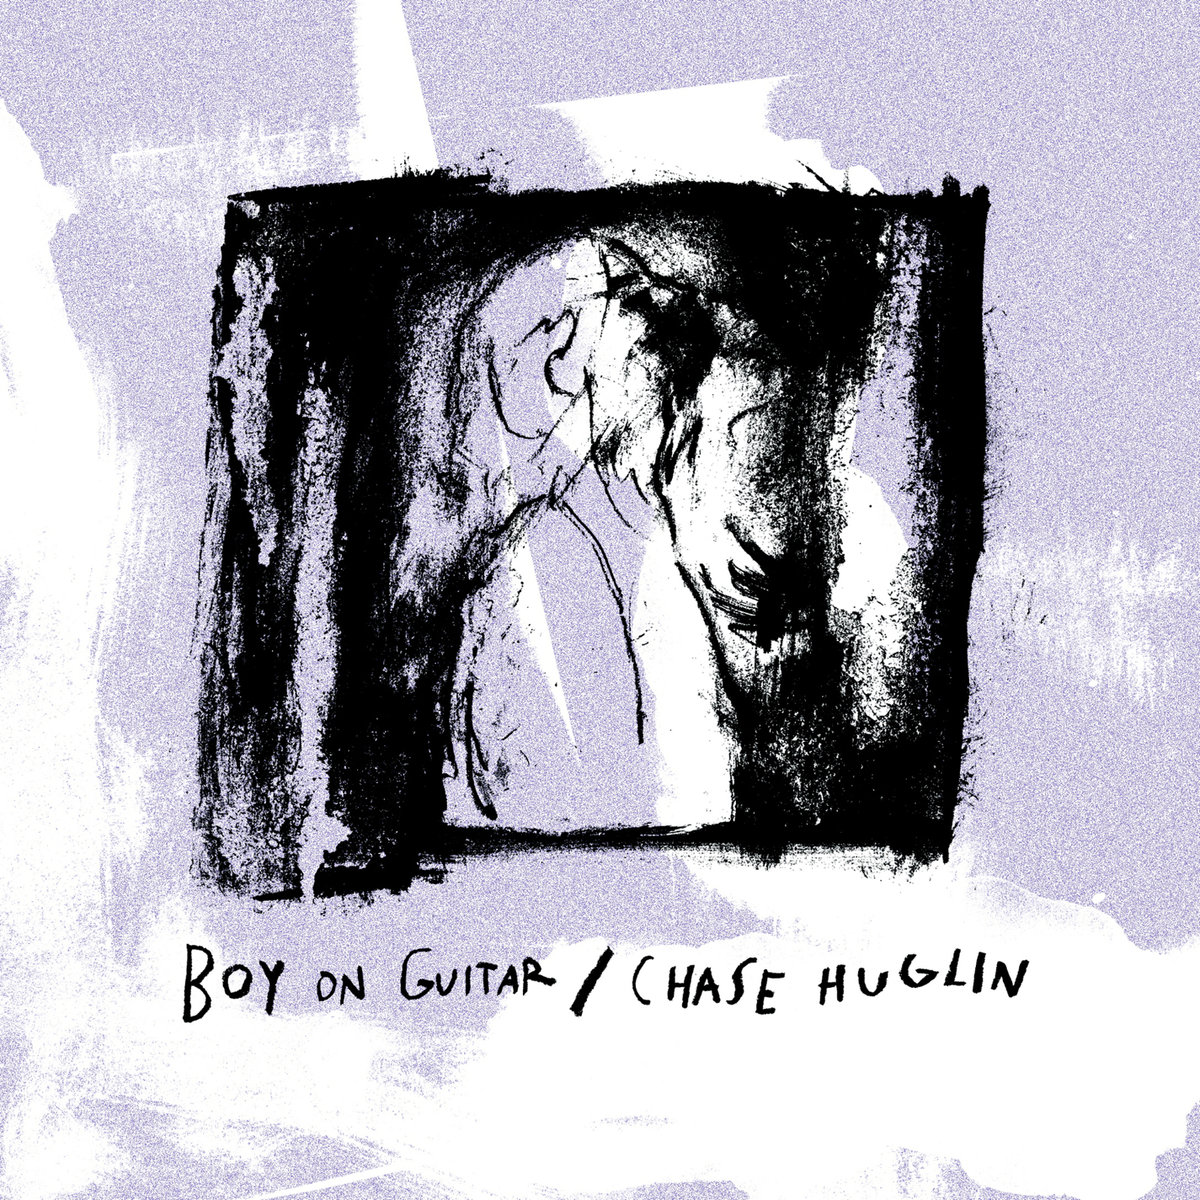 Boy On Guitar / Chase Huglin - Split